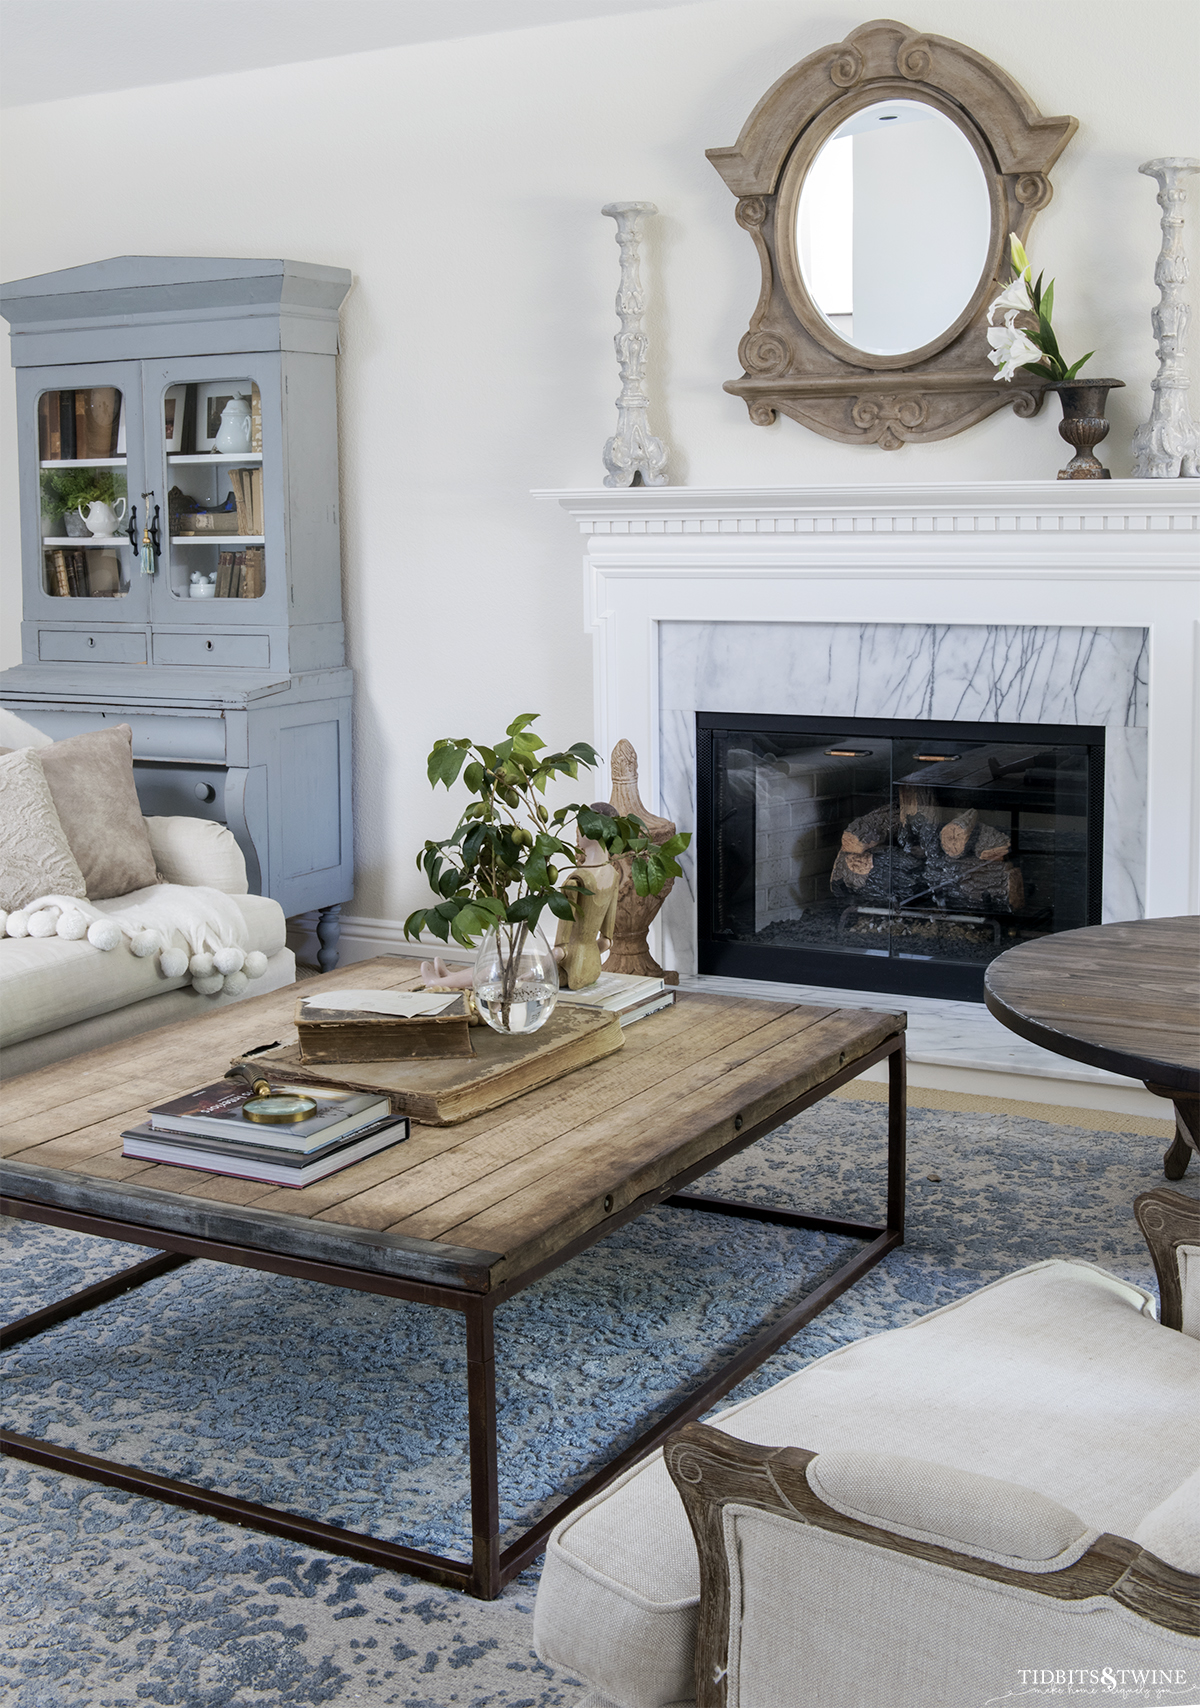 Industrial coffee table in front of white traditional fireplace with french blue cabinet next to it